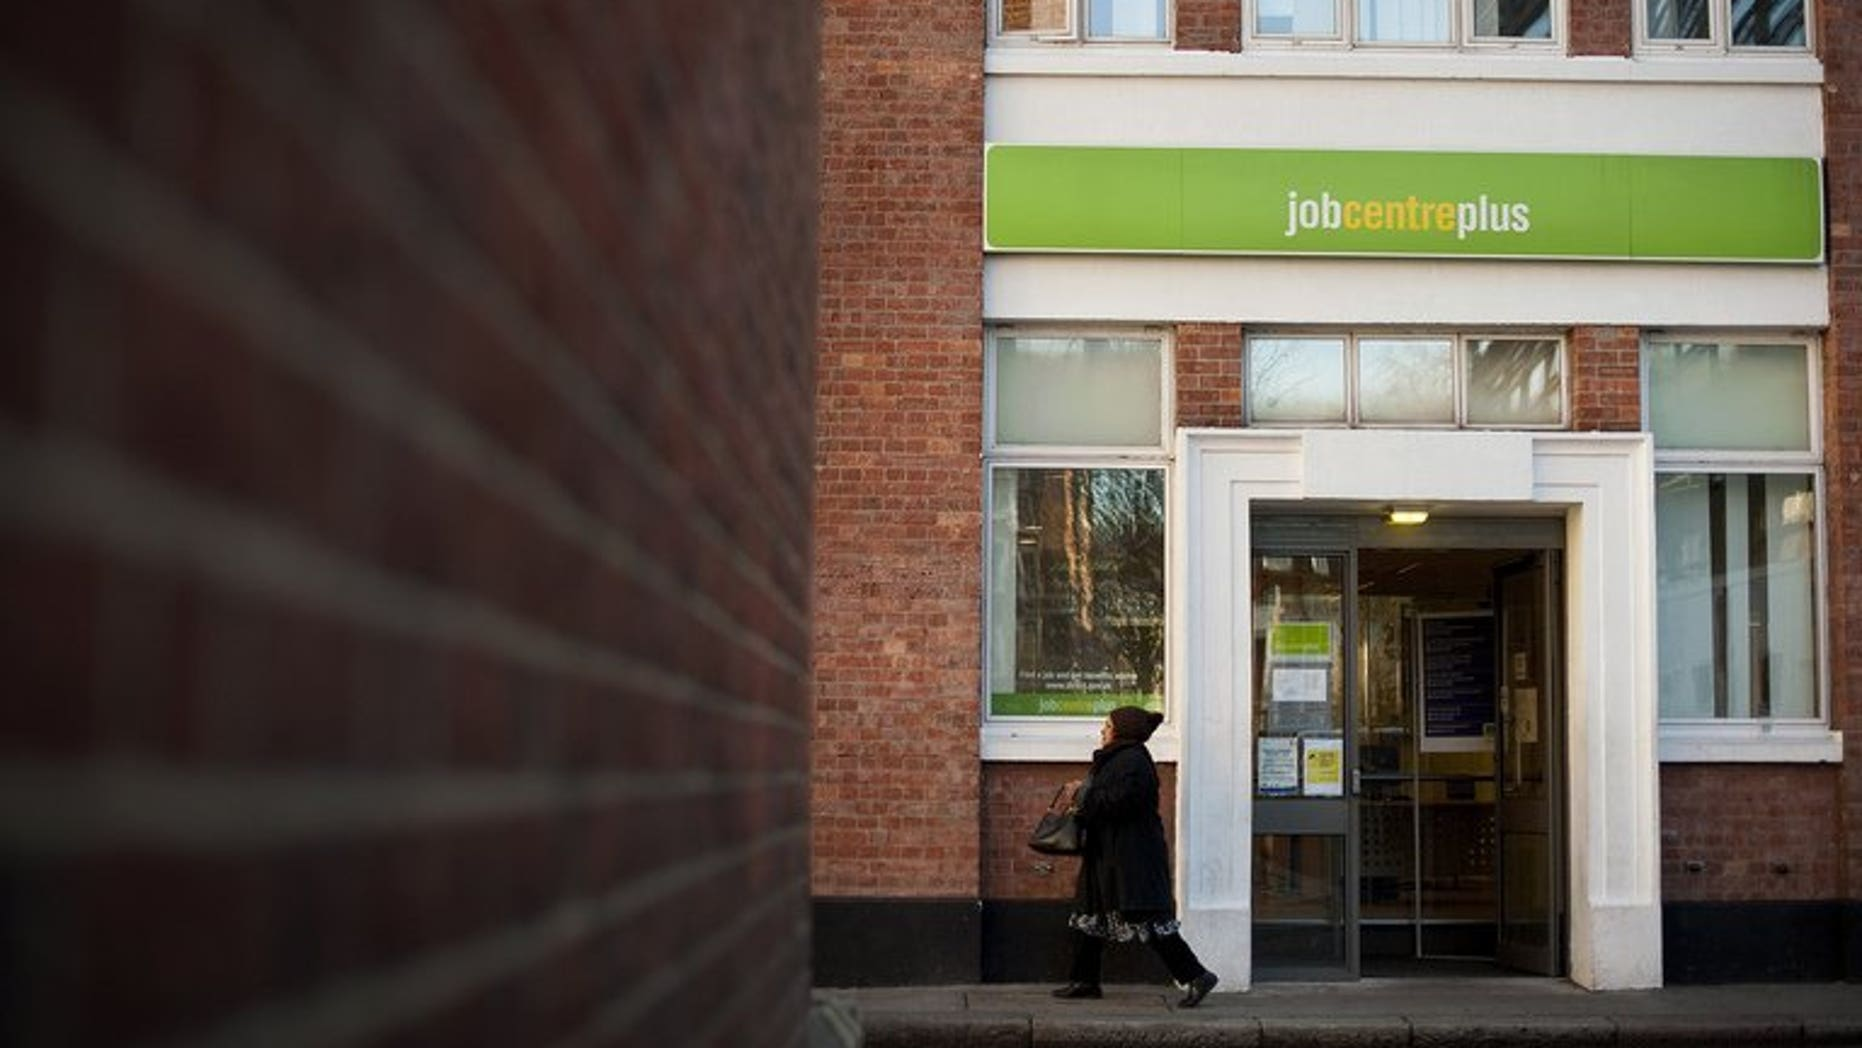 A job centre is pictured in central London, on February 15, 2012.